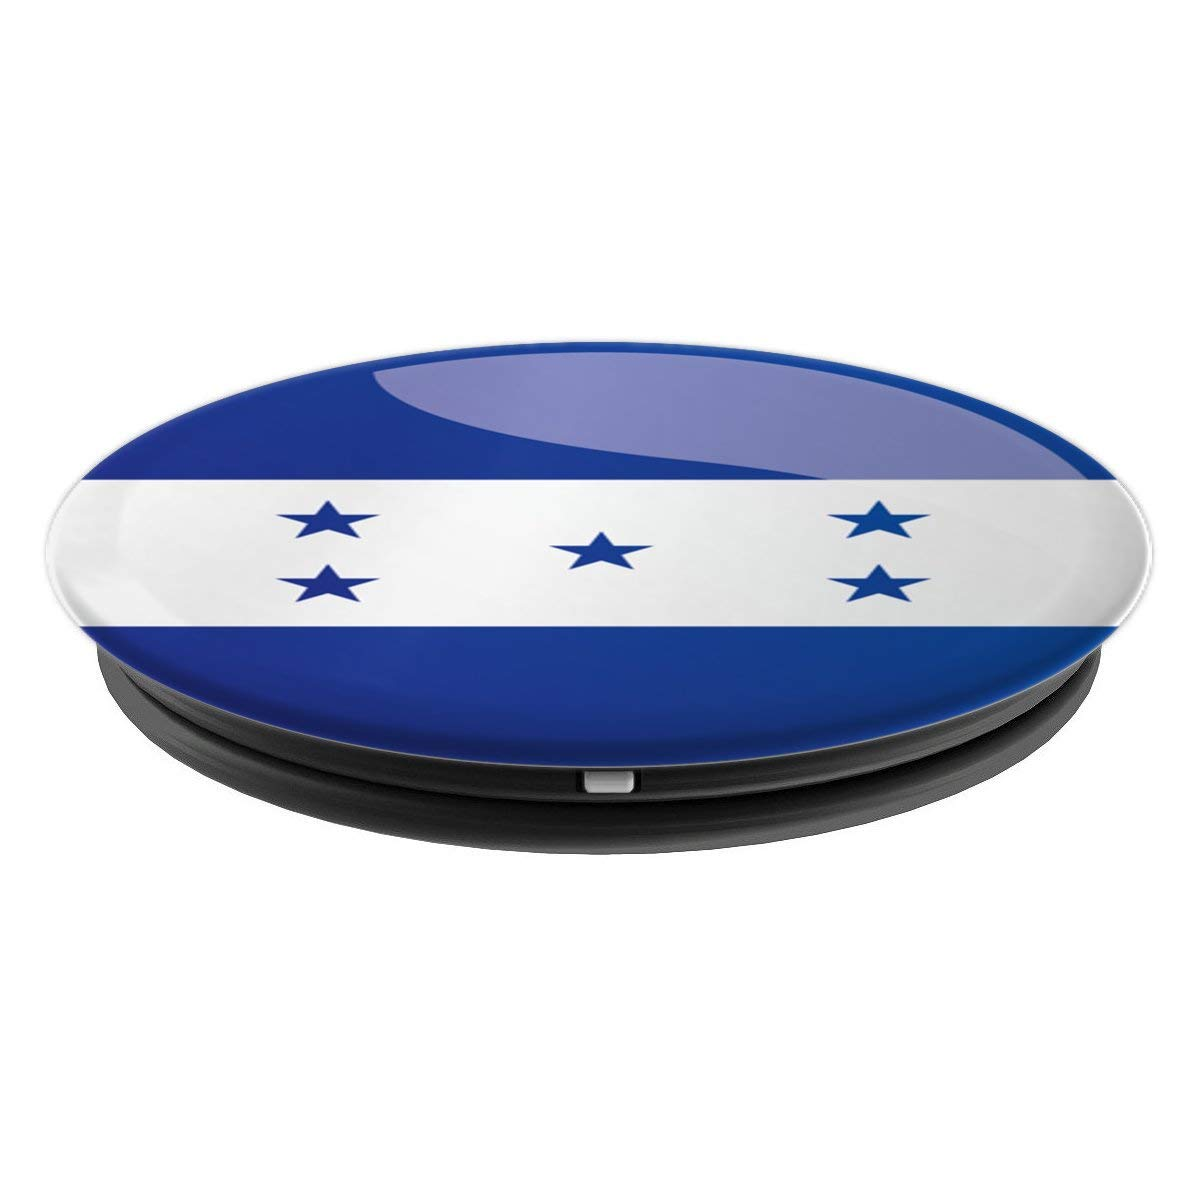 Amazon.com: Sujetador suck on para celular catracho - PopSockets Grip and Stand for Phones and Tablets: Cell Phones & Accessories